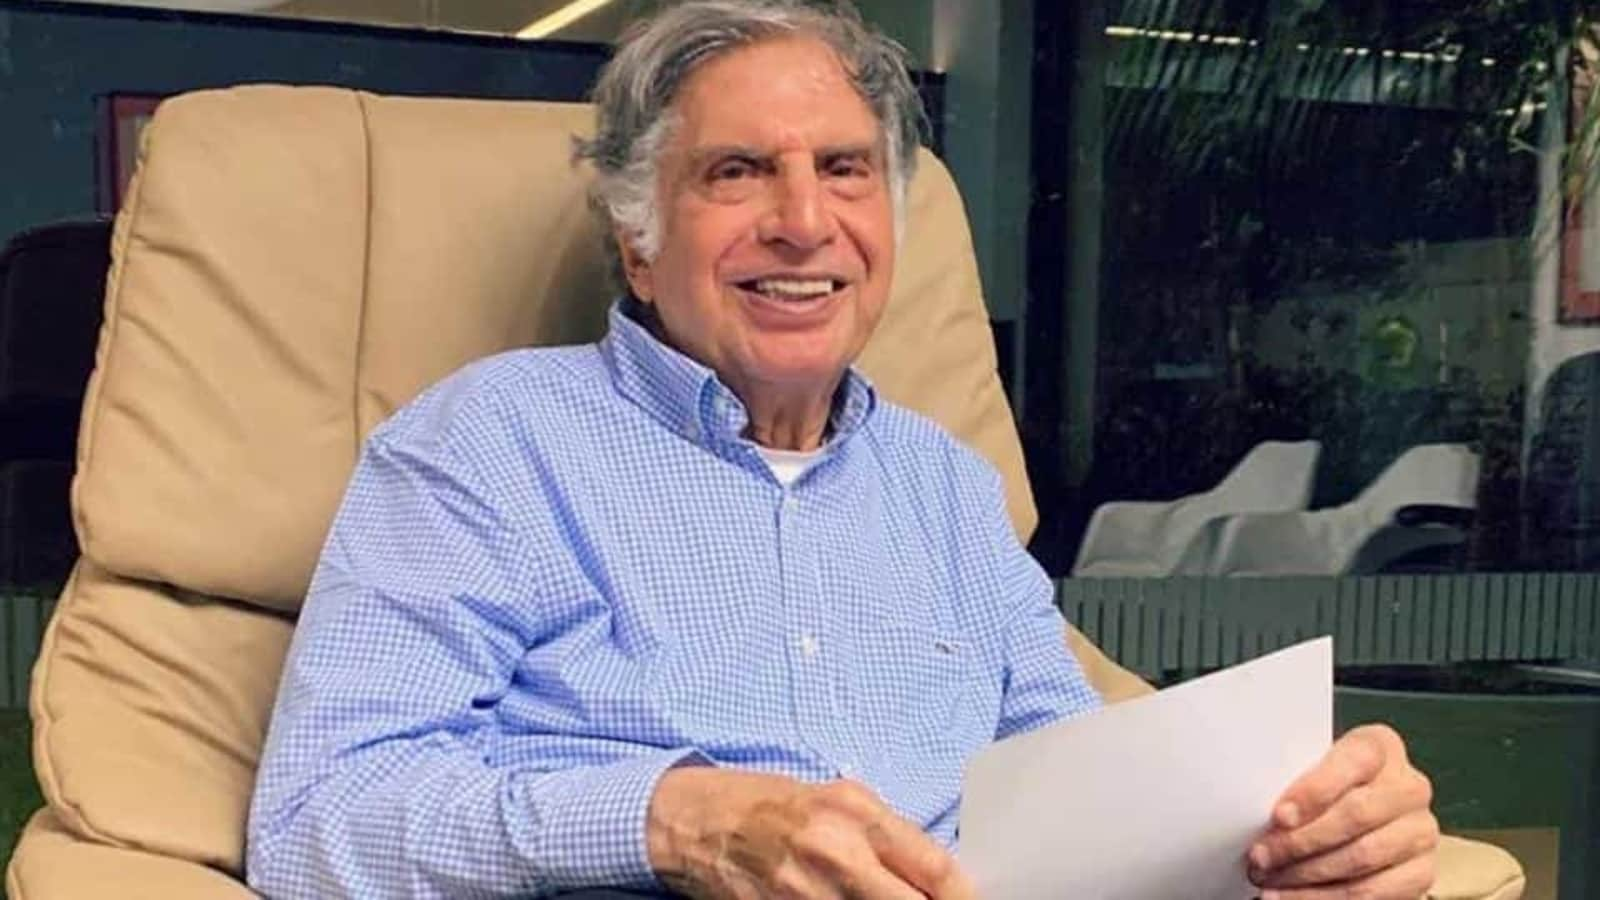 Ratan Tata acquires undisclosed stake in Pritish Nandy Communications, shares jump - Hindustan Times